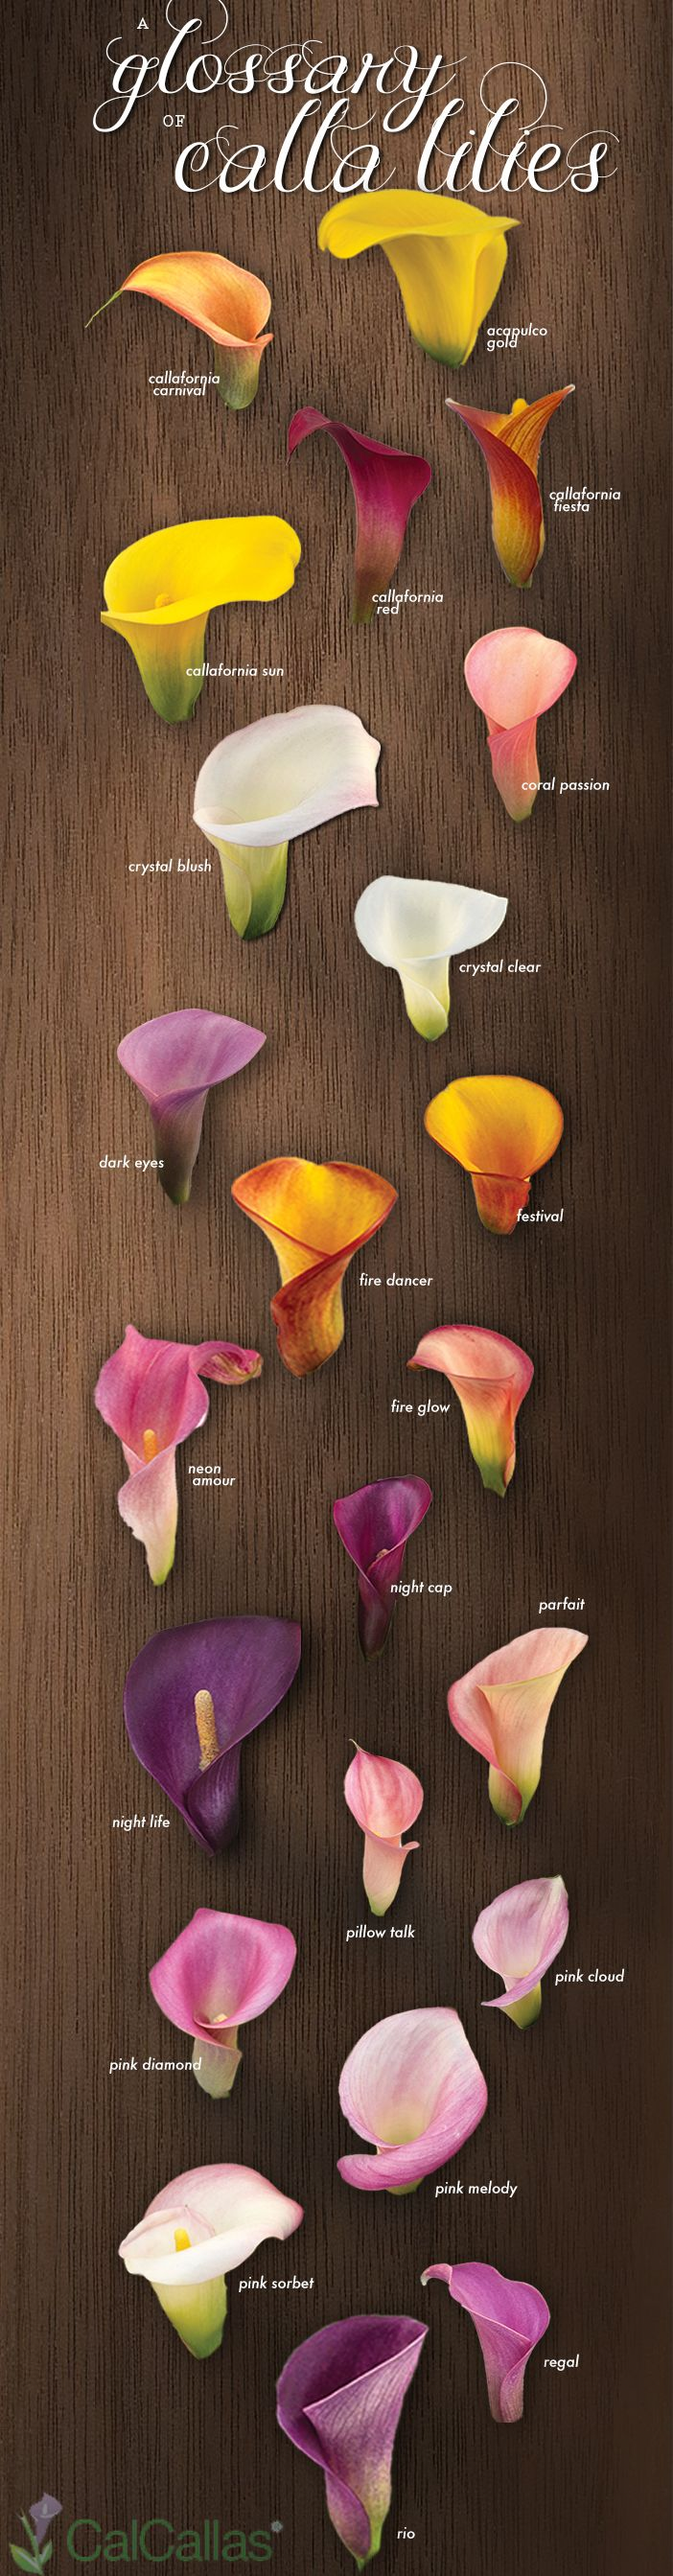 27 best calla lily tattoos images on pinterest calla lilies 27 best calla lily tattoos images on pinterest calla lilies lilies tattoo and beautiful flowers izmirmasajfo Choice Image